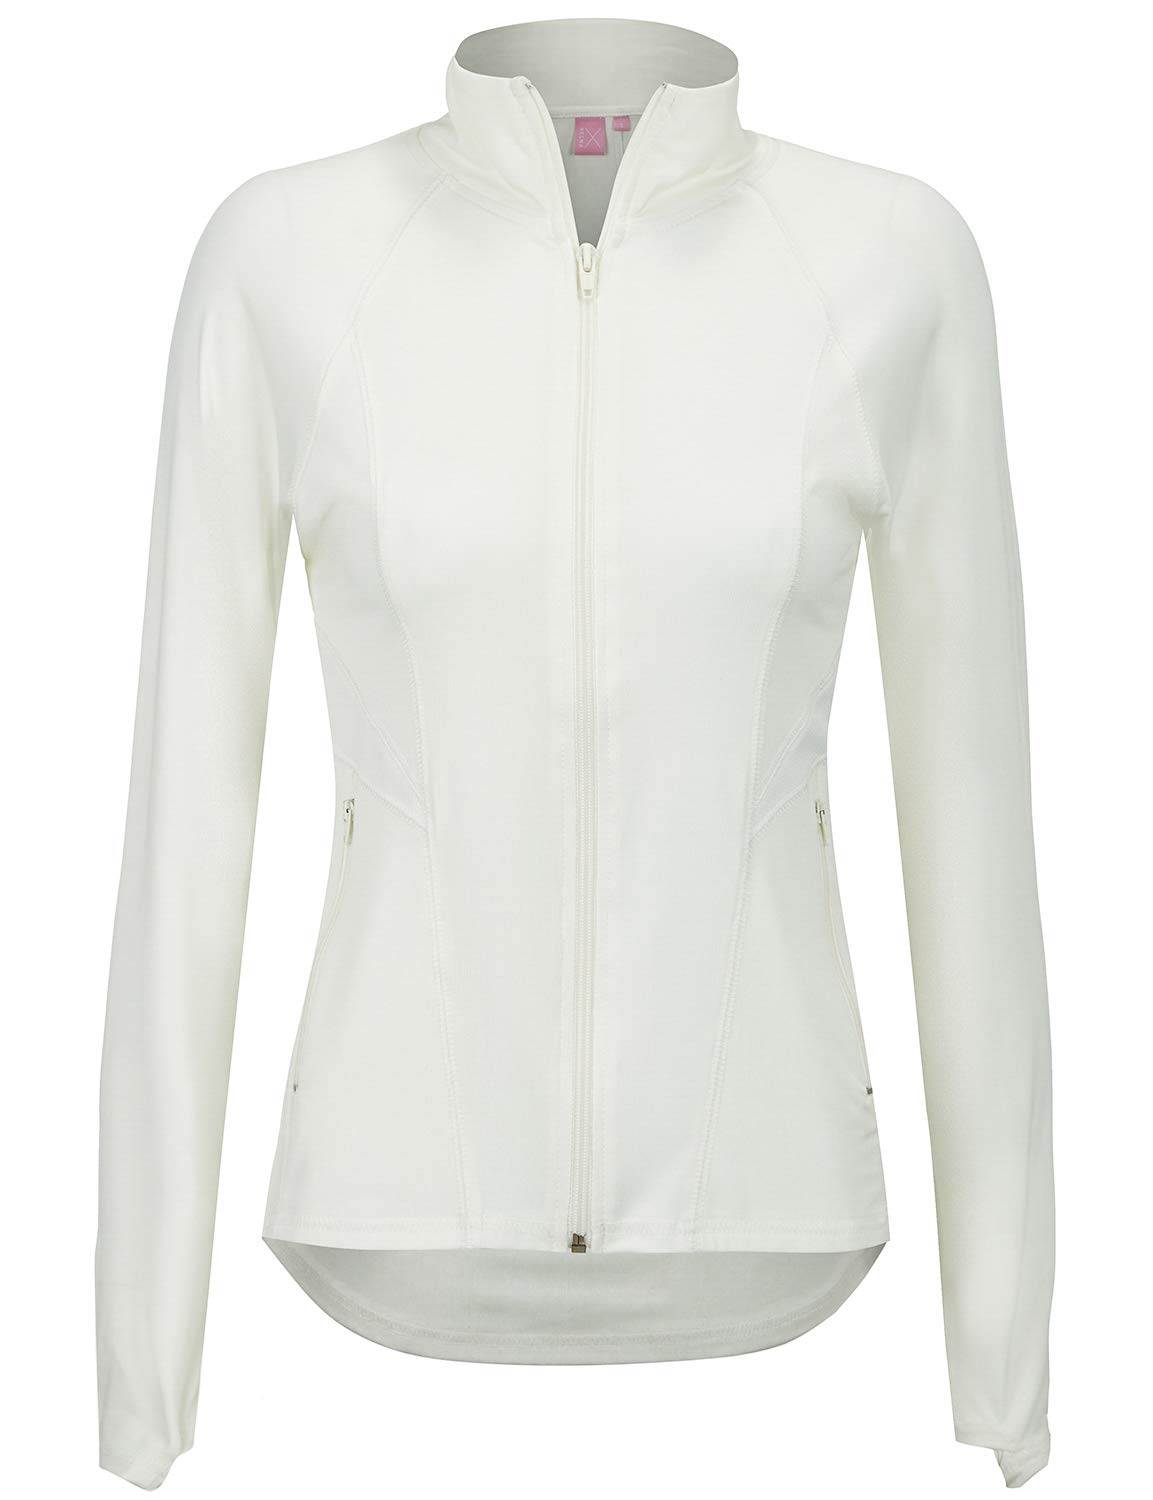 Regna X Women's Full Zip Up Active Seamed Athletic Gym Track Jacket White S